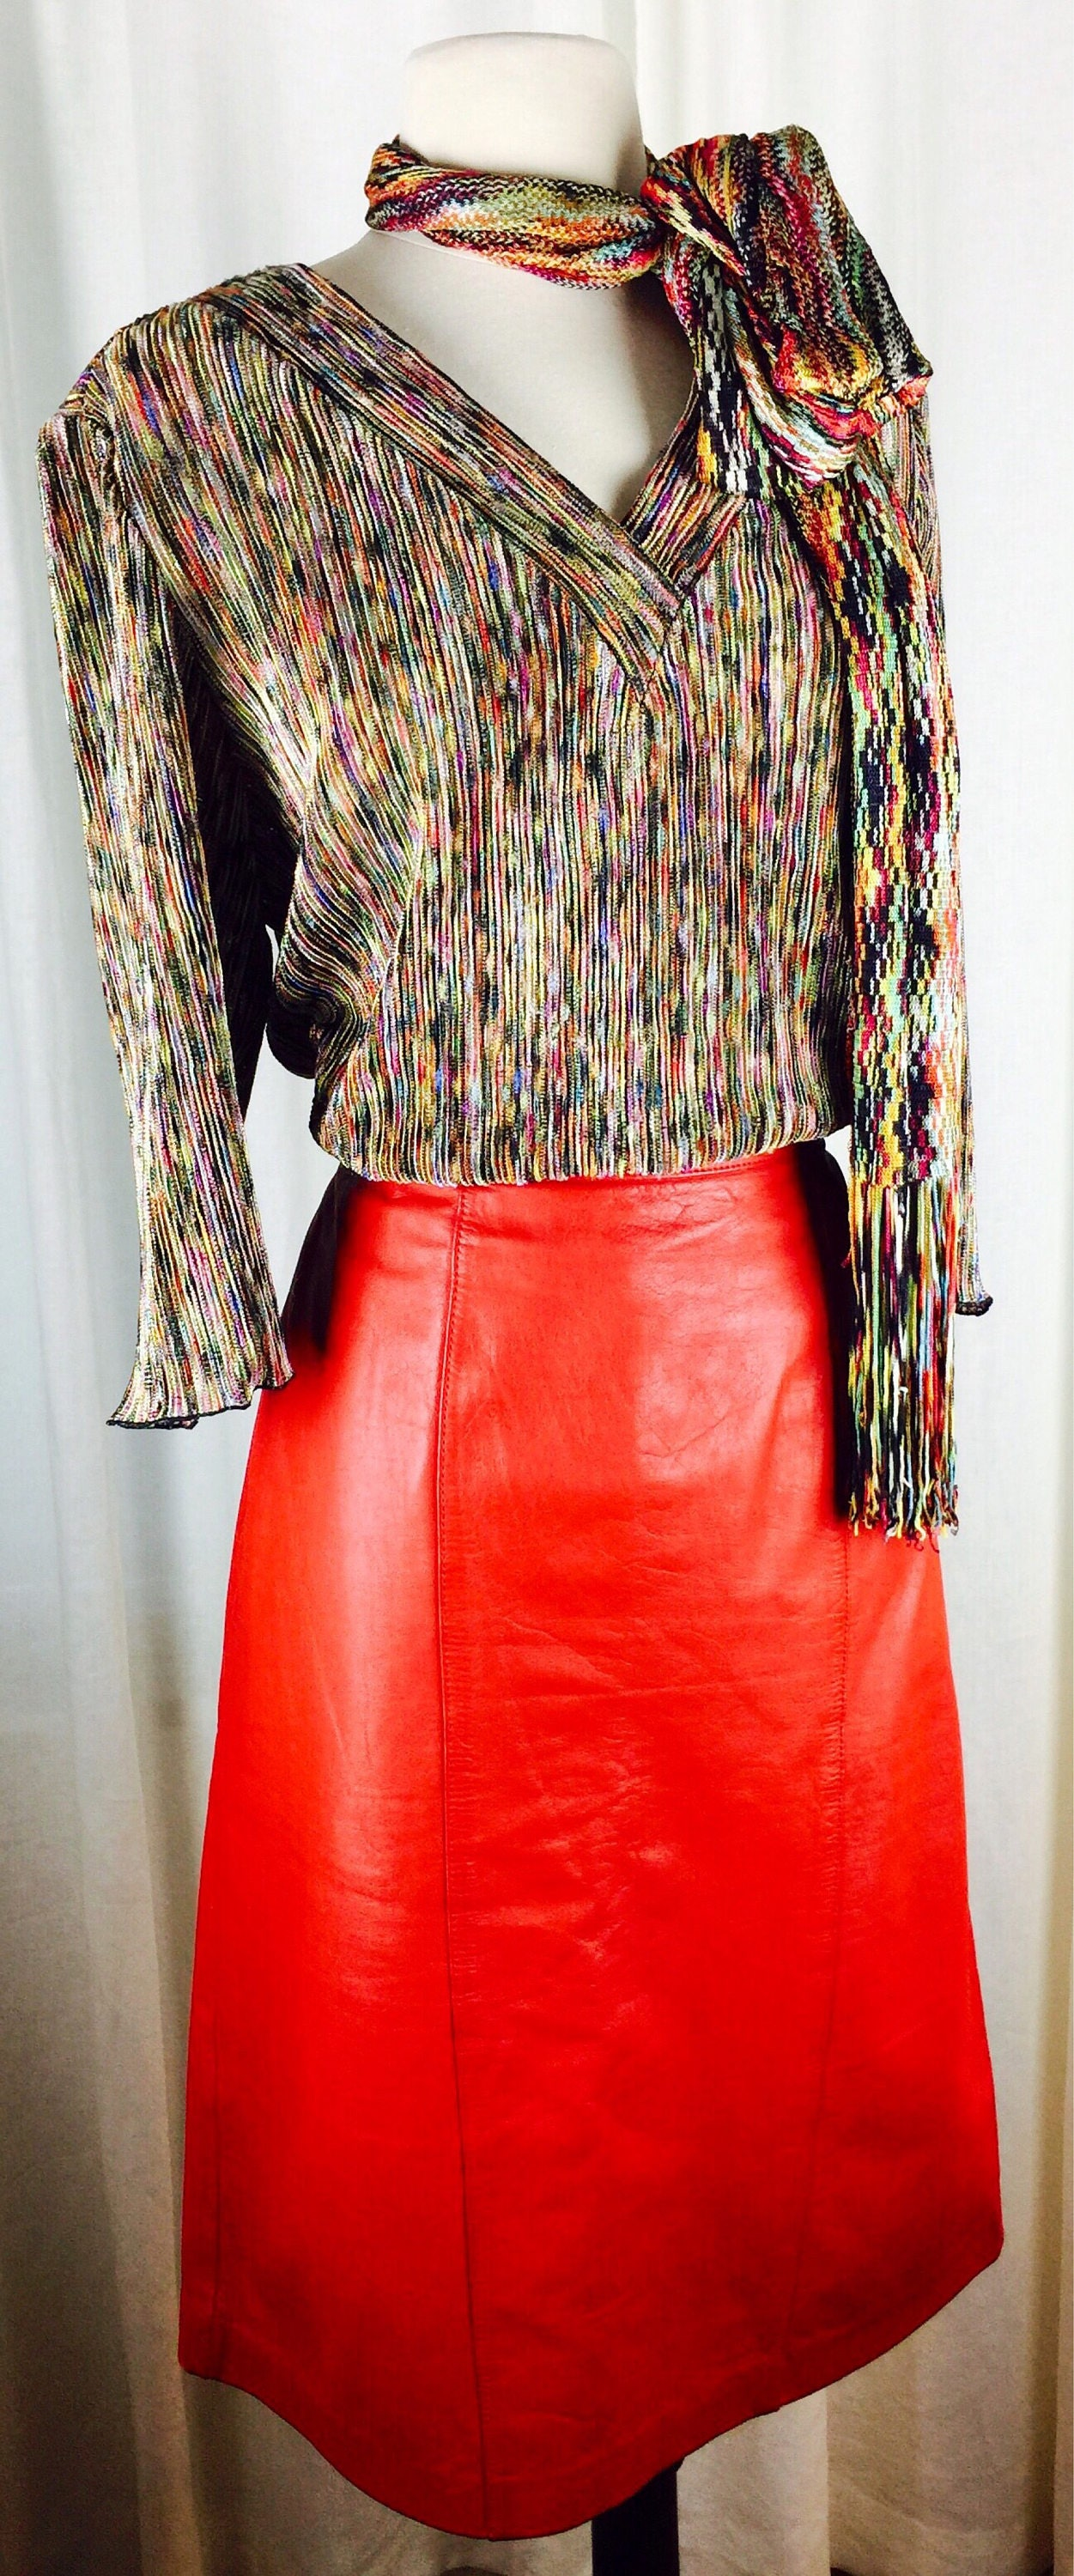 137ffe603c Vintage 80's bright red leather skirt. 1